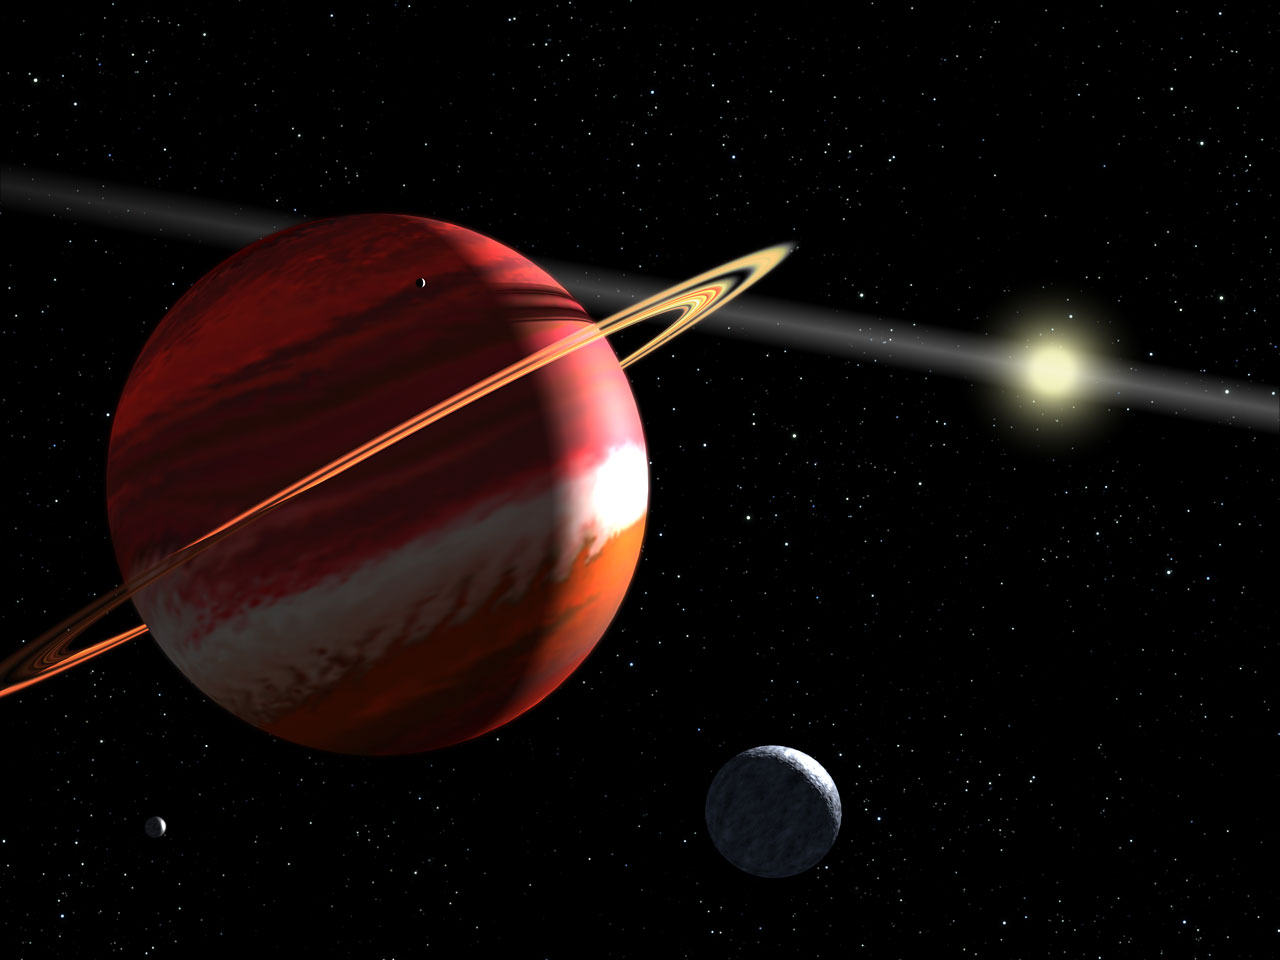 Hubble observations confirm that planets form from disks ...